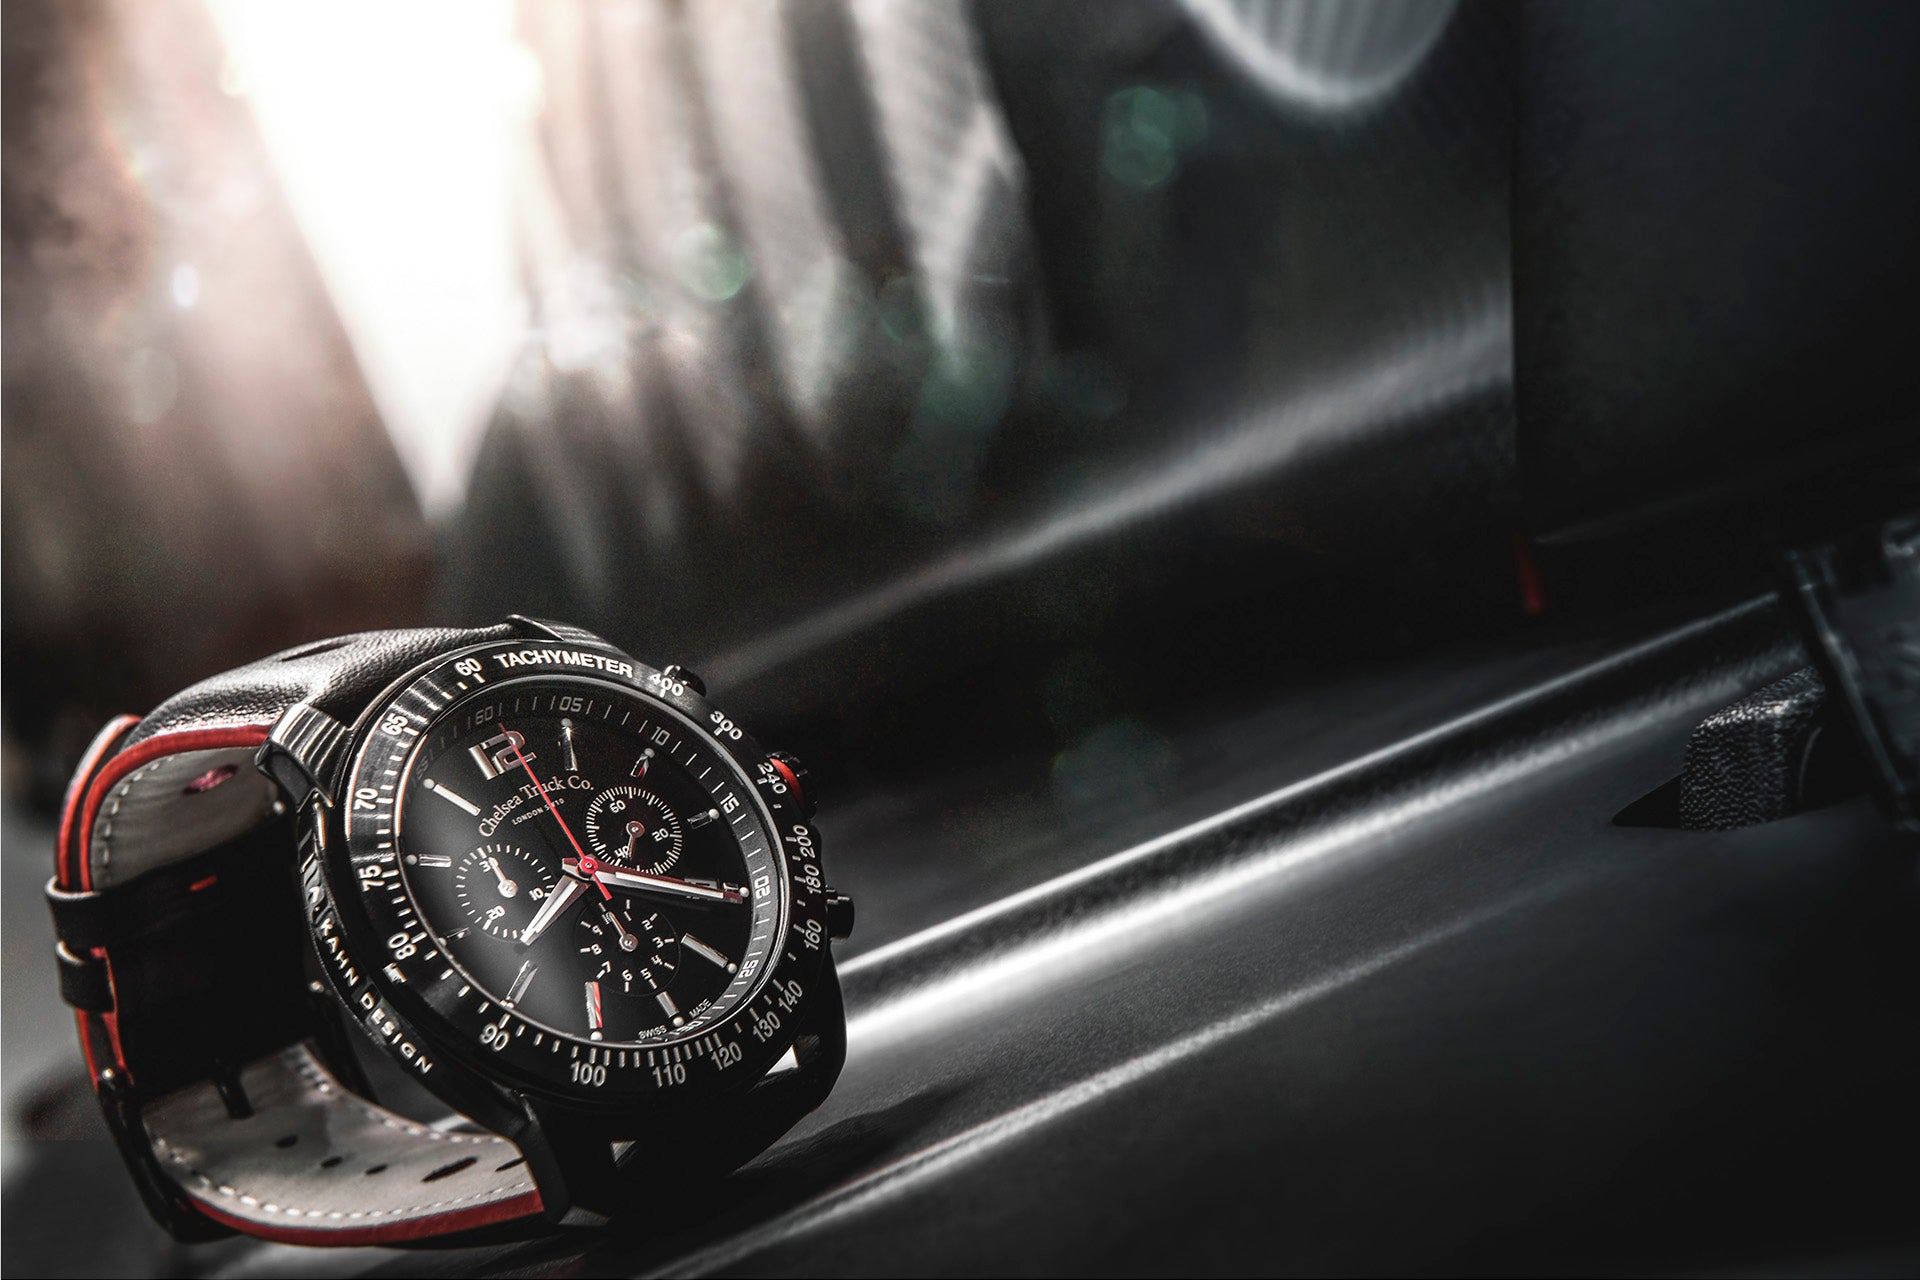 Discover the Chelsea Truck Company range of timepieces